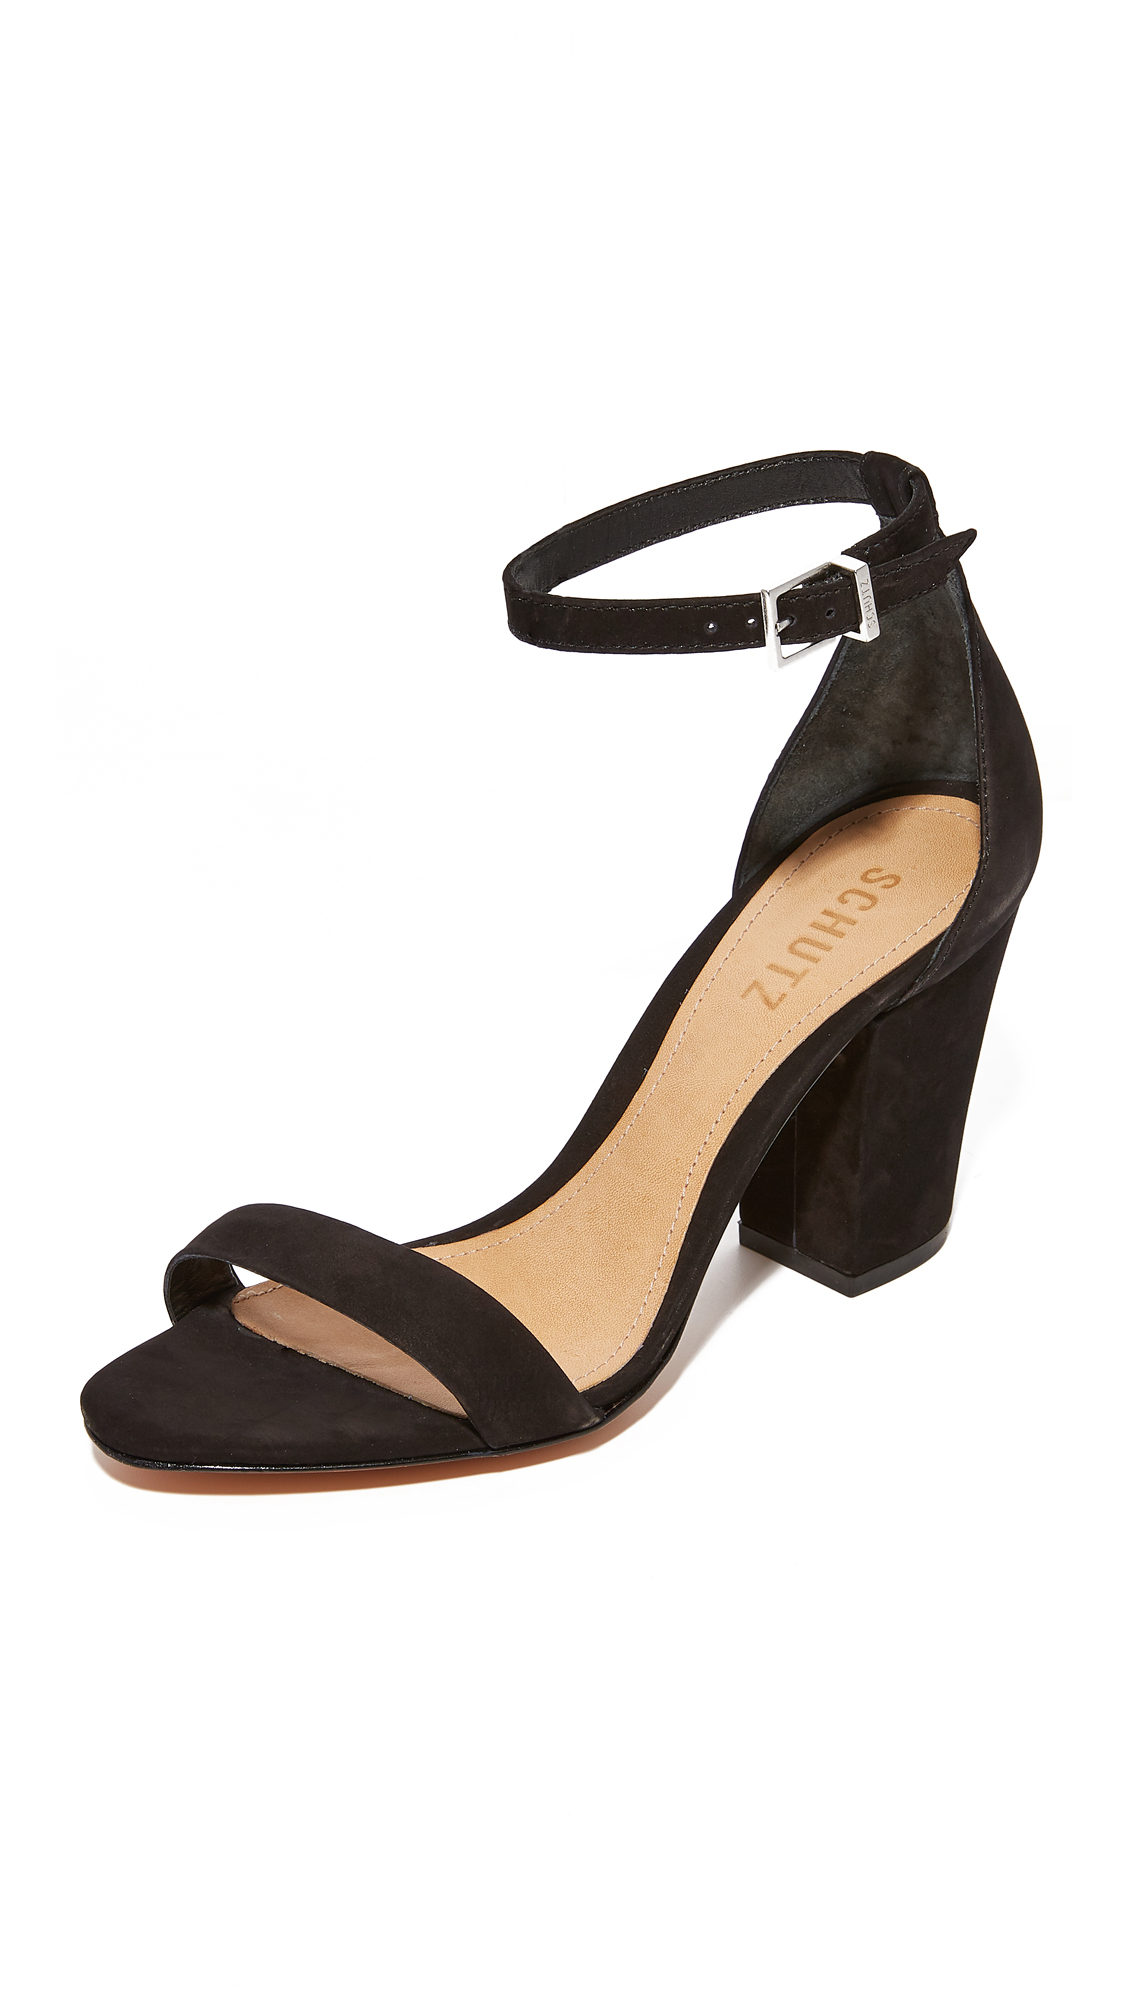 Schutz Jenny Lee Sandals In Black